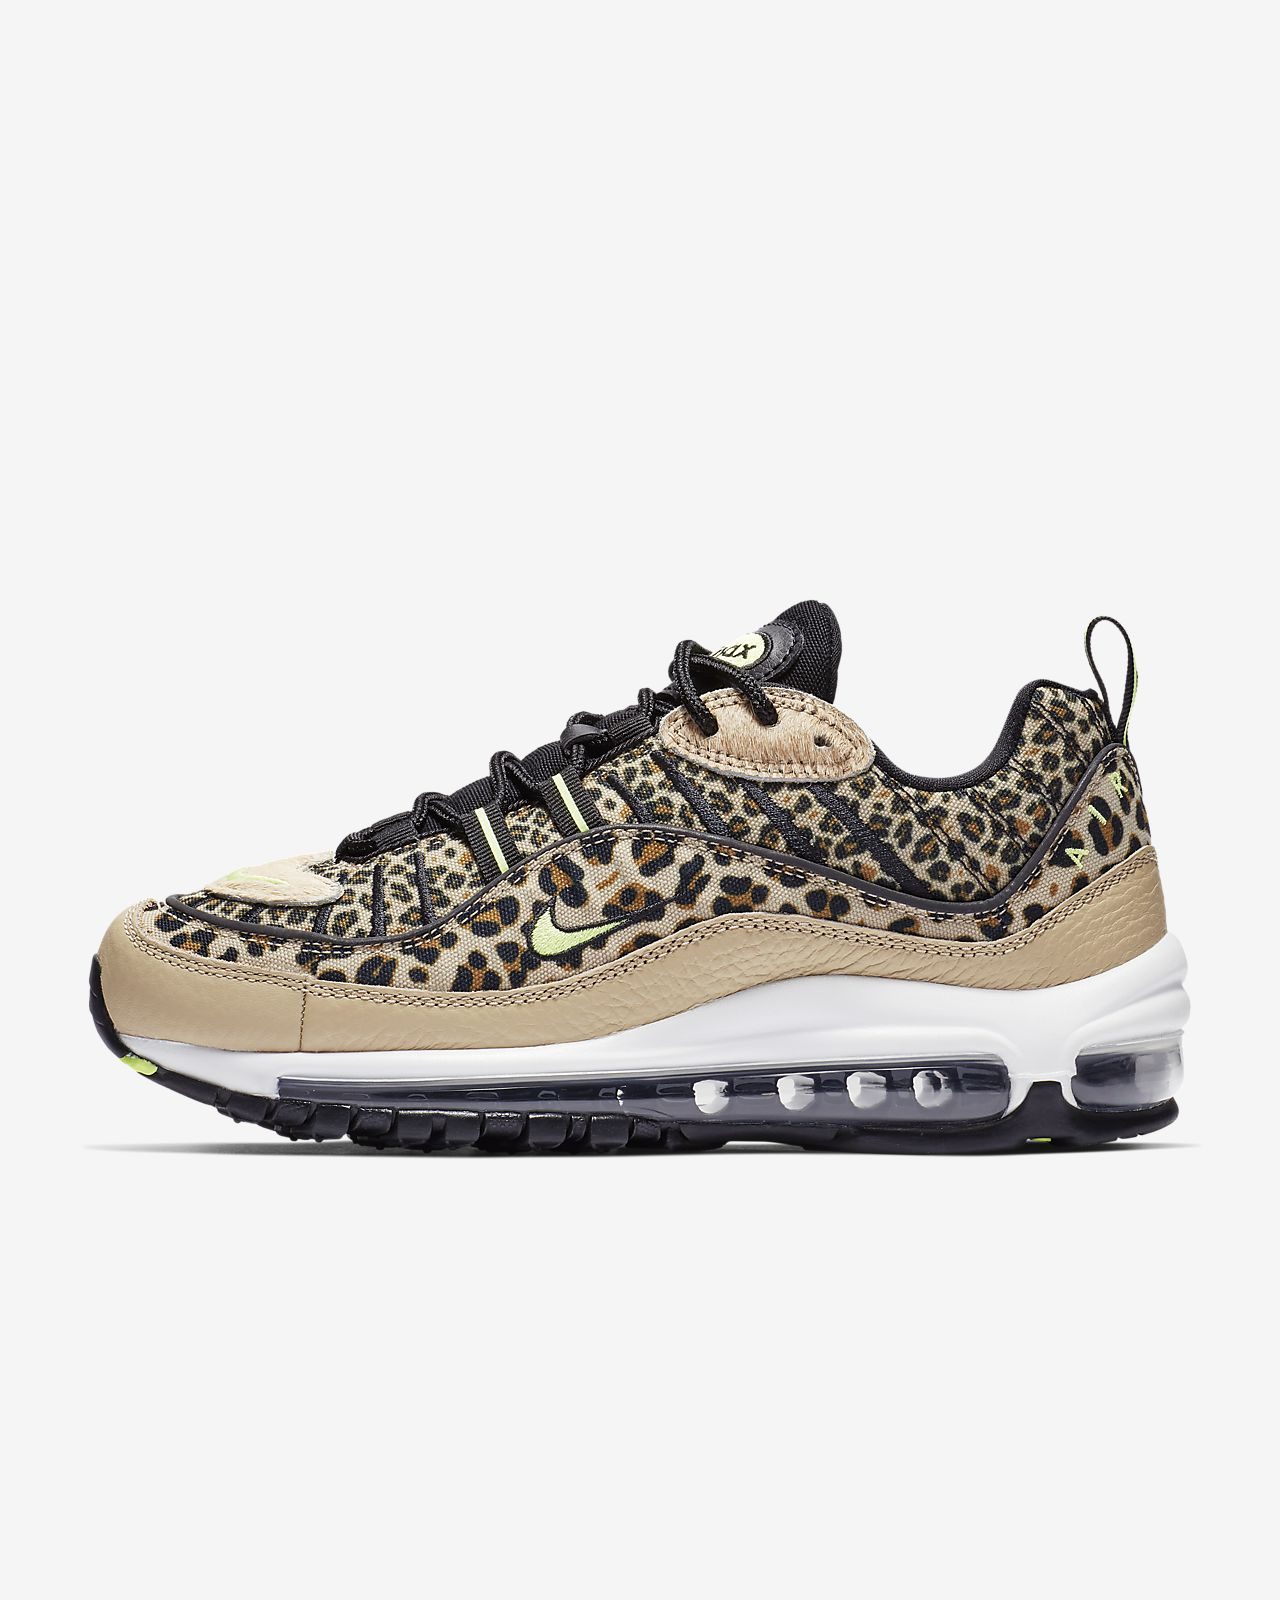 8e6692230a Nike Air Max 98 Premium Animal Women s Shoe. Nike.com